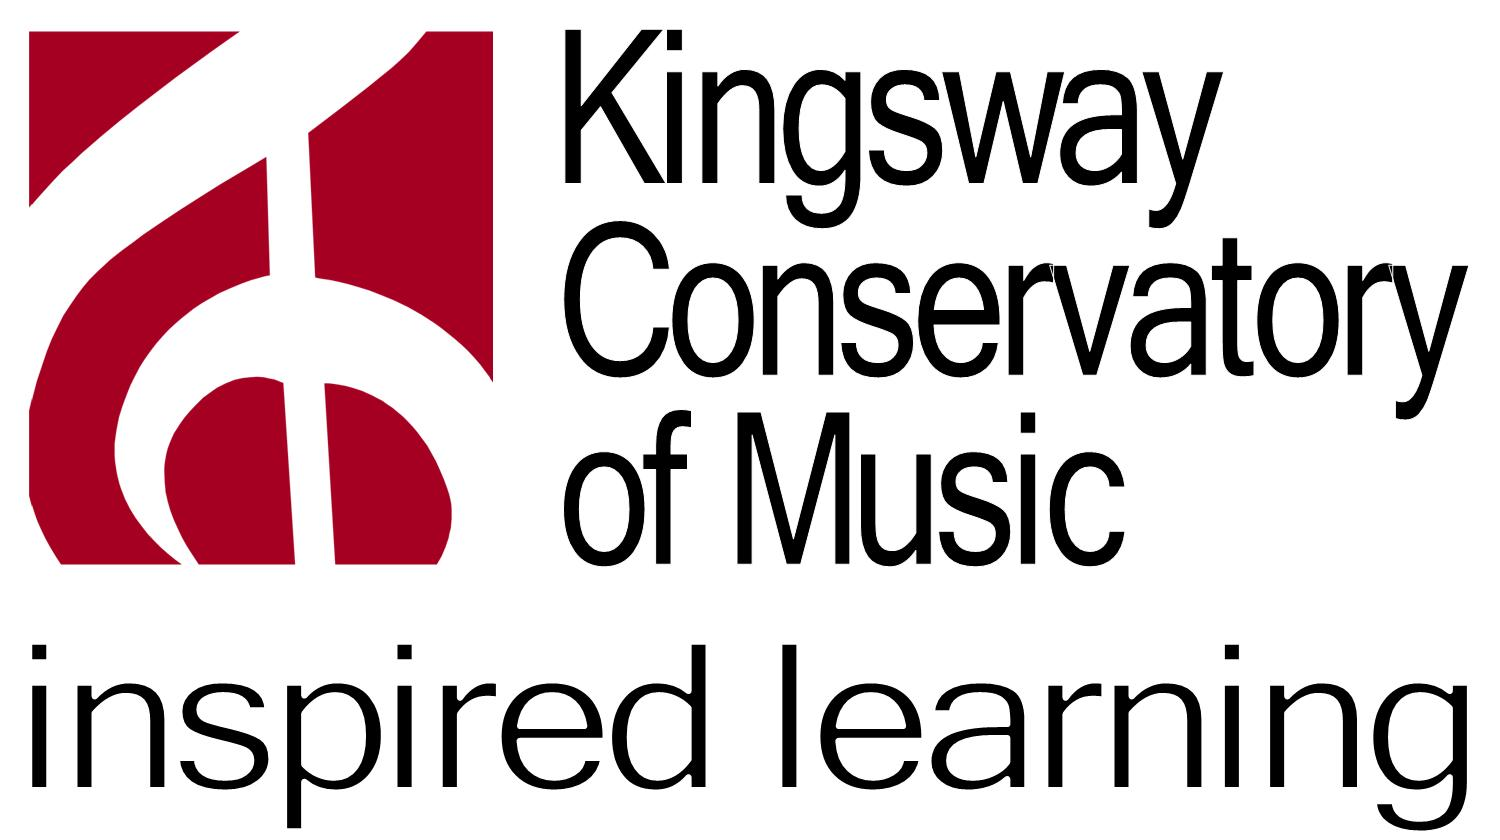 Kingsway Conservatory of Music